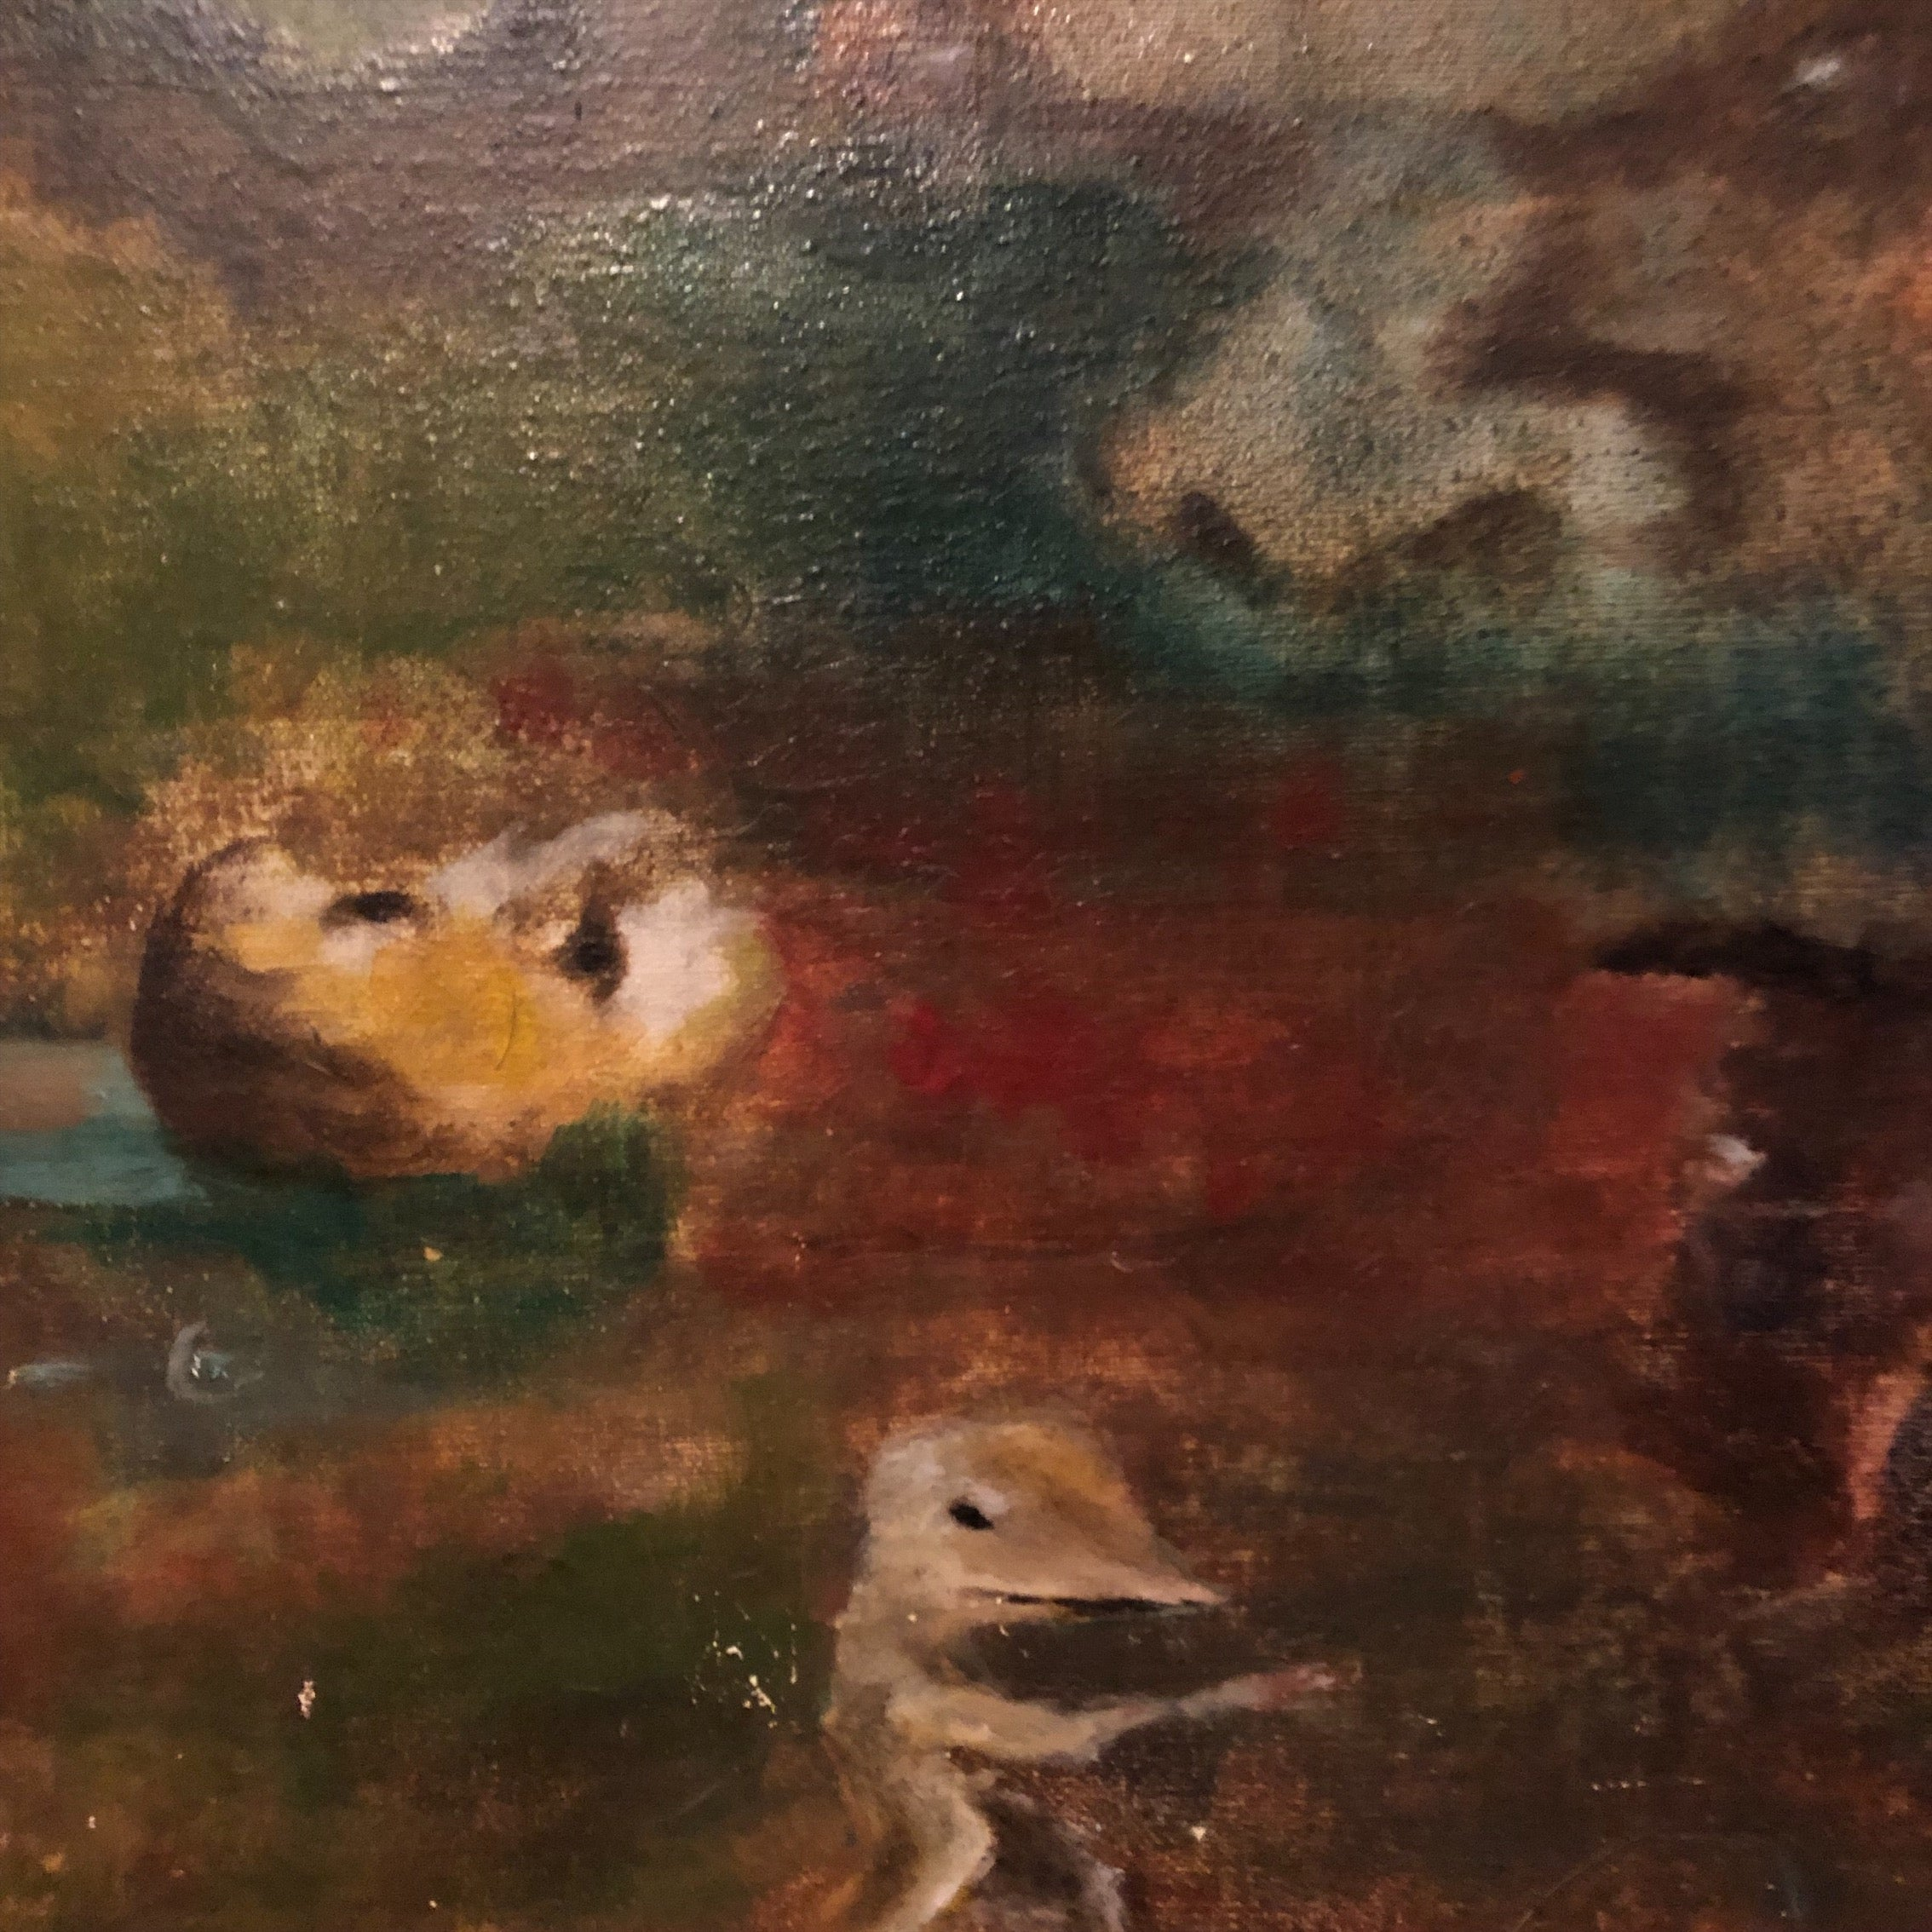 Vintage Surreal Painting from 1960s - Outsider Art - Christopher Charles - Surrealist Landscape - Rare Unusual Artwork